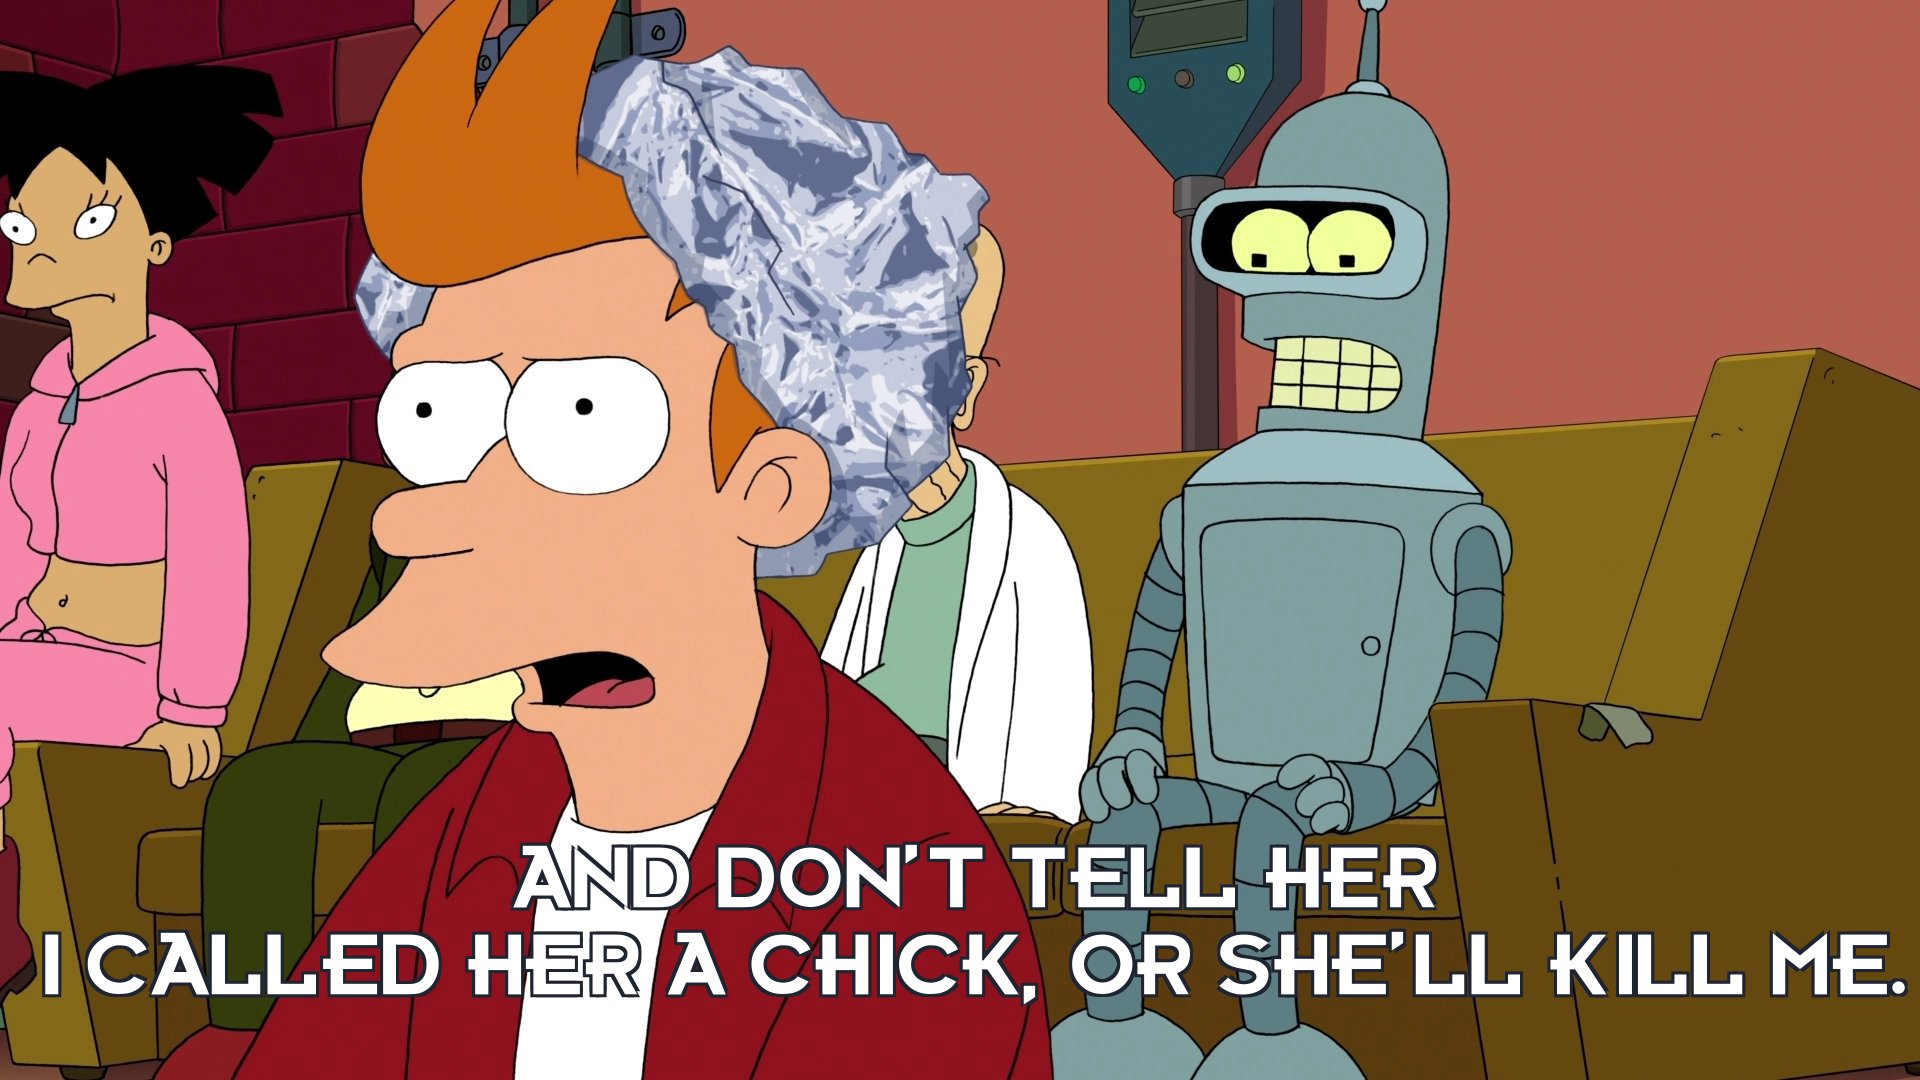 Philip J Fry: And don't tell her I called her a chick, or she'll kill me.